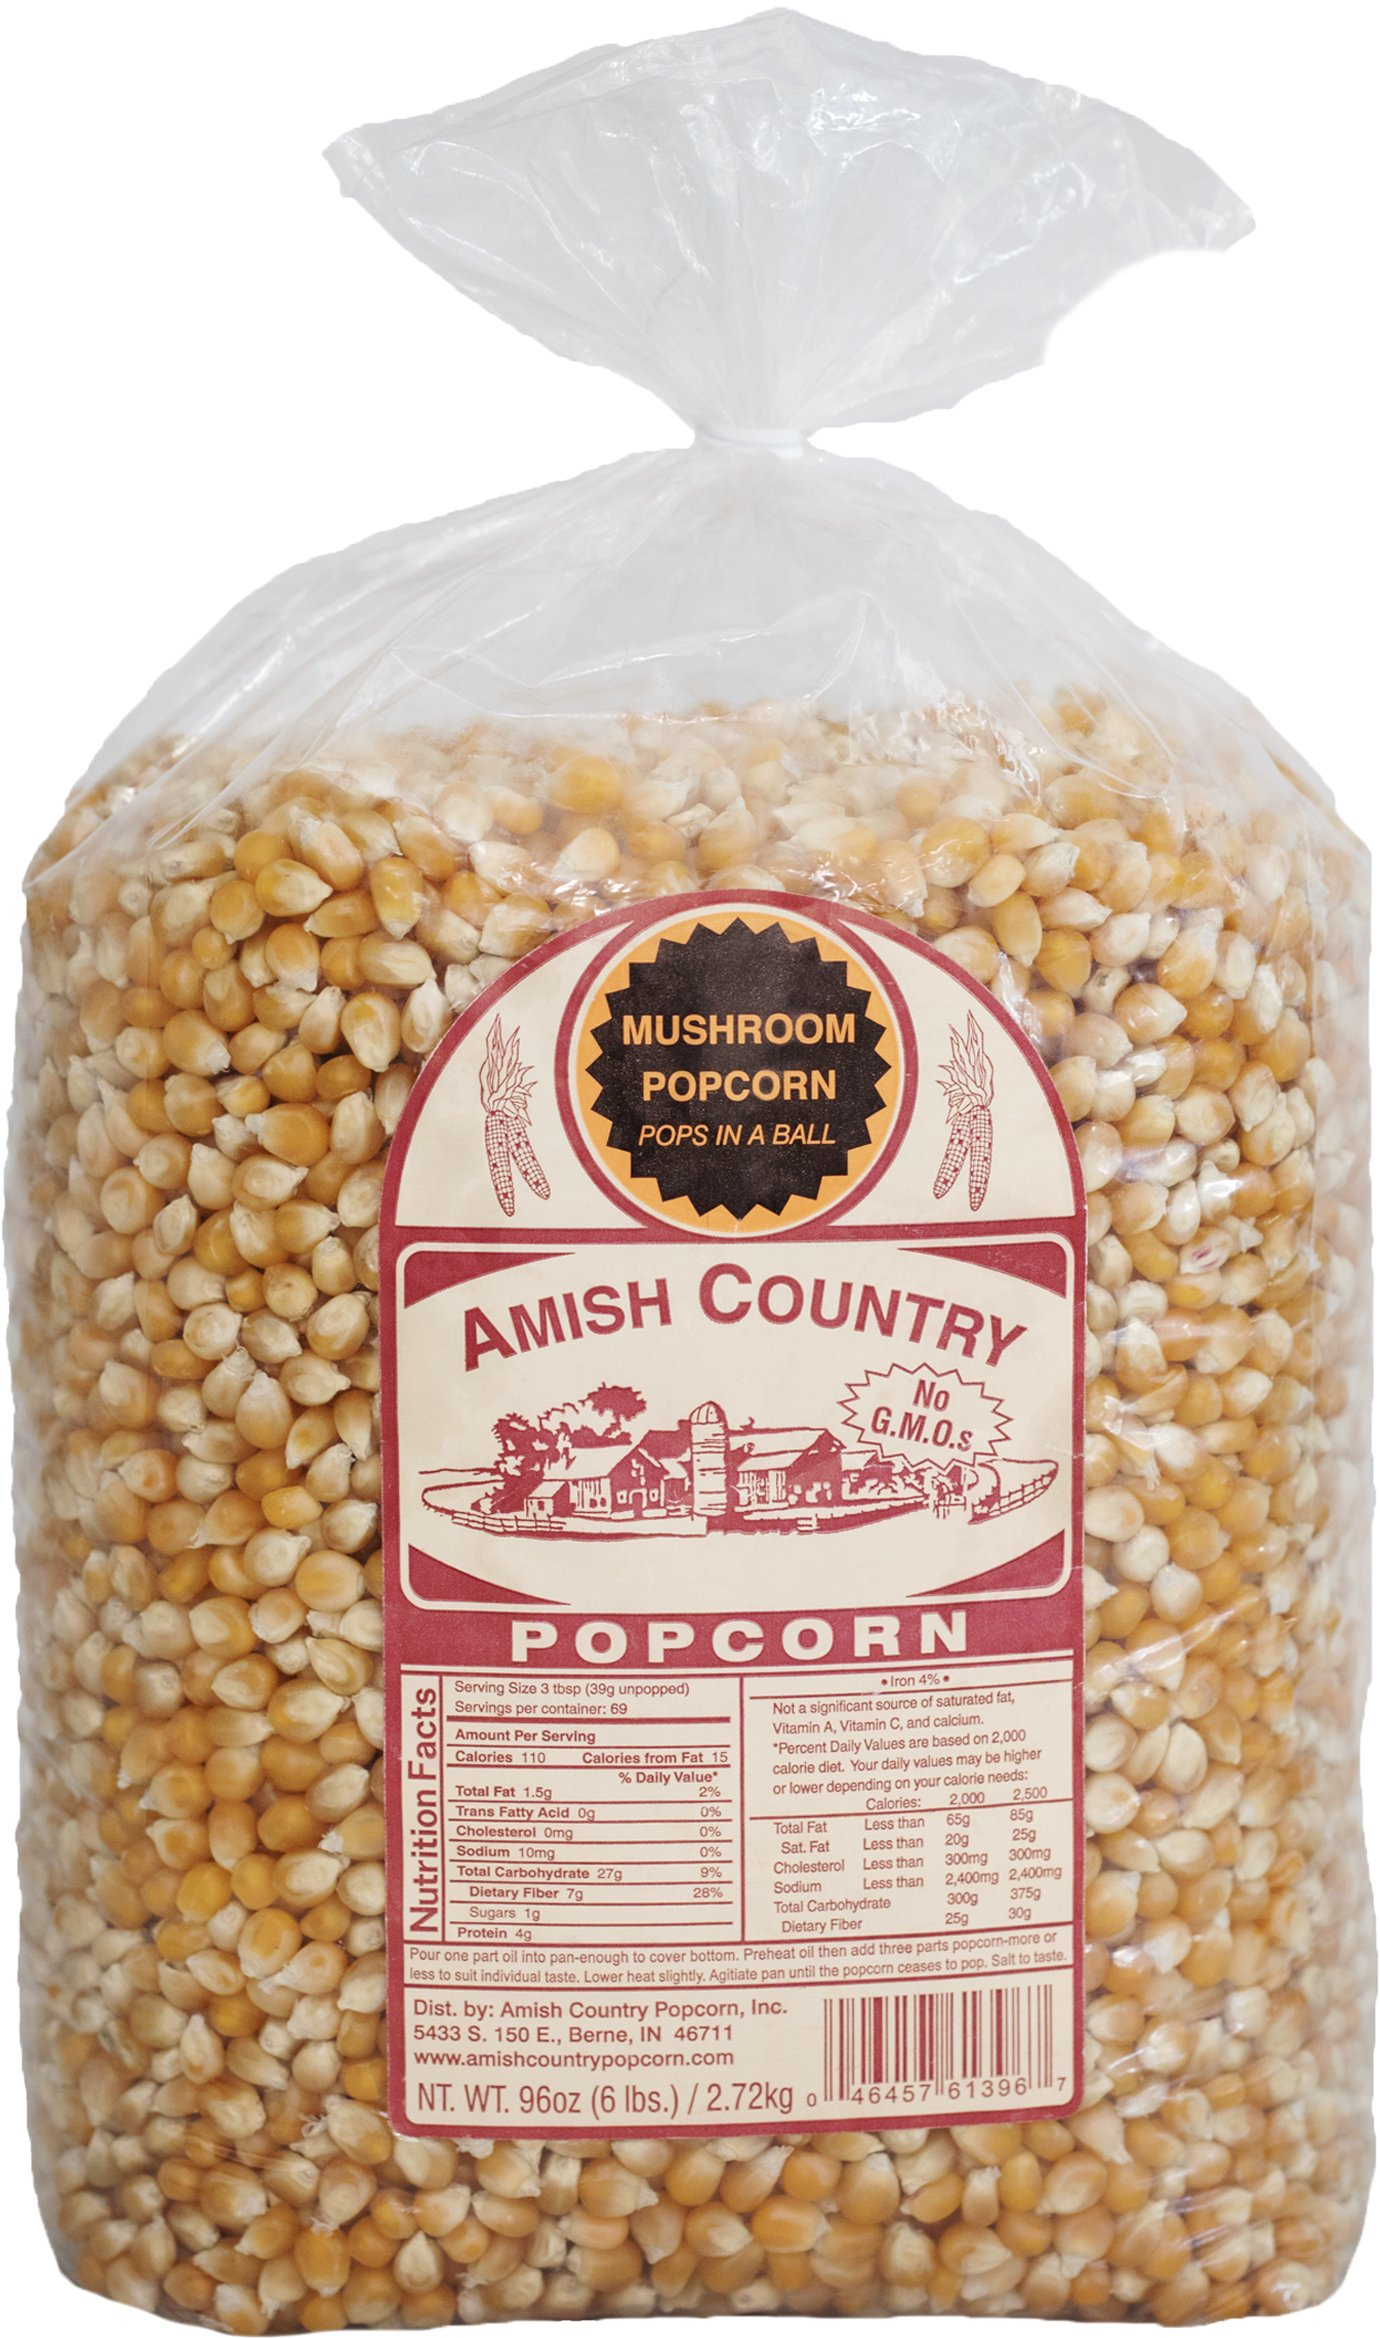 Amish Country Popcorn - Mushroom Popcorn (6 Pound Bag) - Old Fashioned, Non GMO, Gluten Free, Microwaveable, Stovetop and Air Popper Friendly - with Recipe Guide